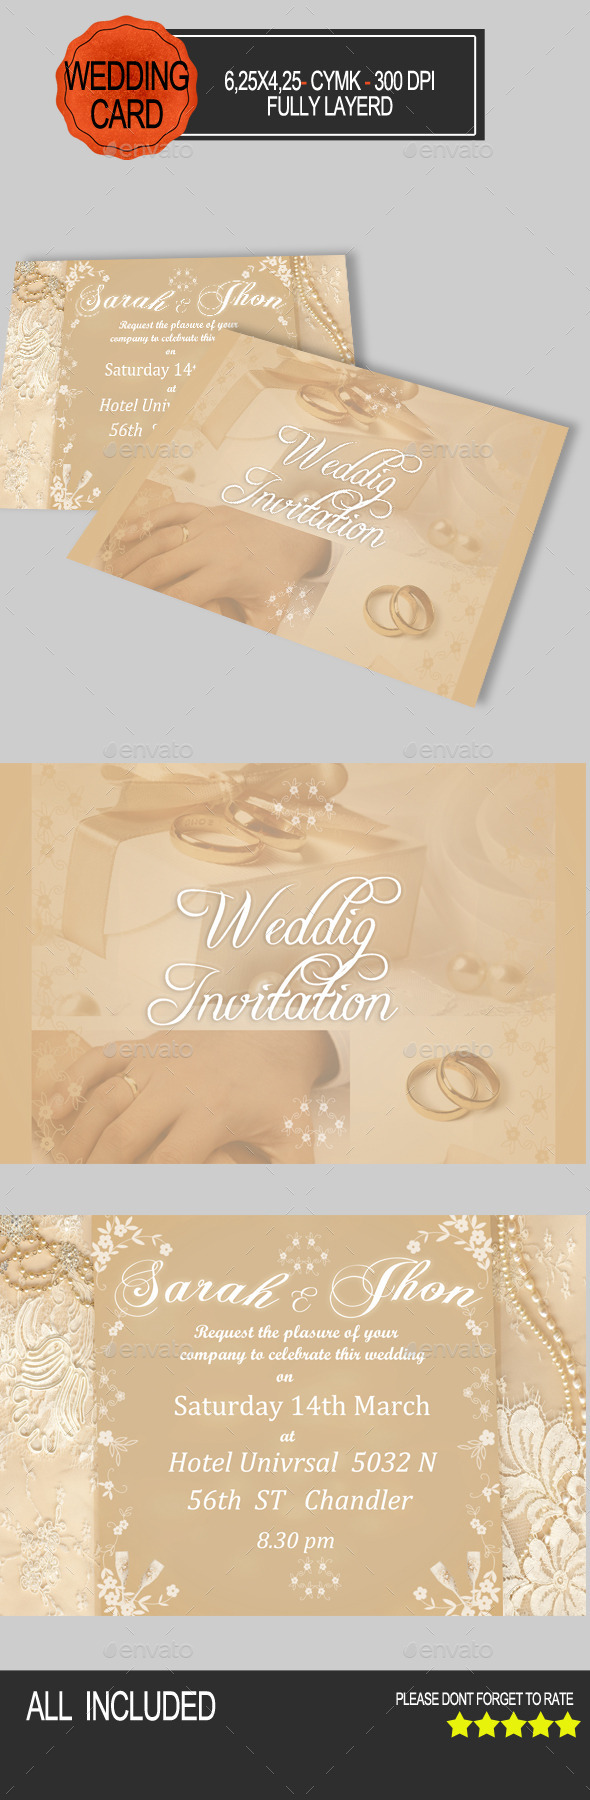 Elegant Wedding Card Invitation - Weddings Cards & Invites